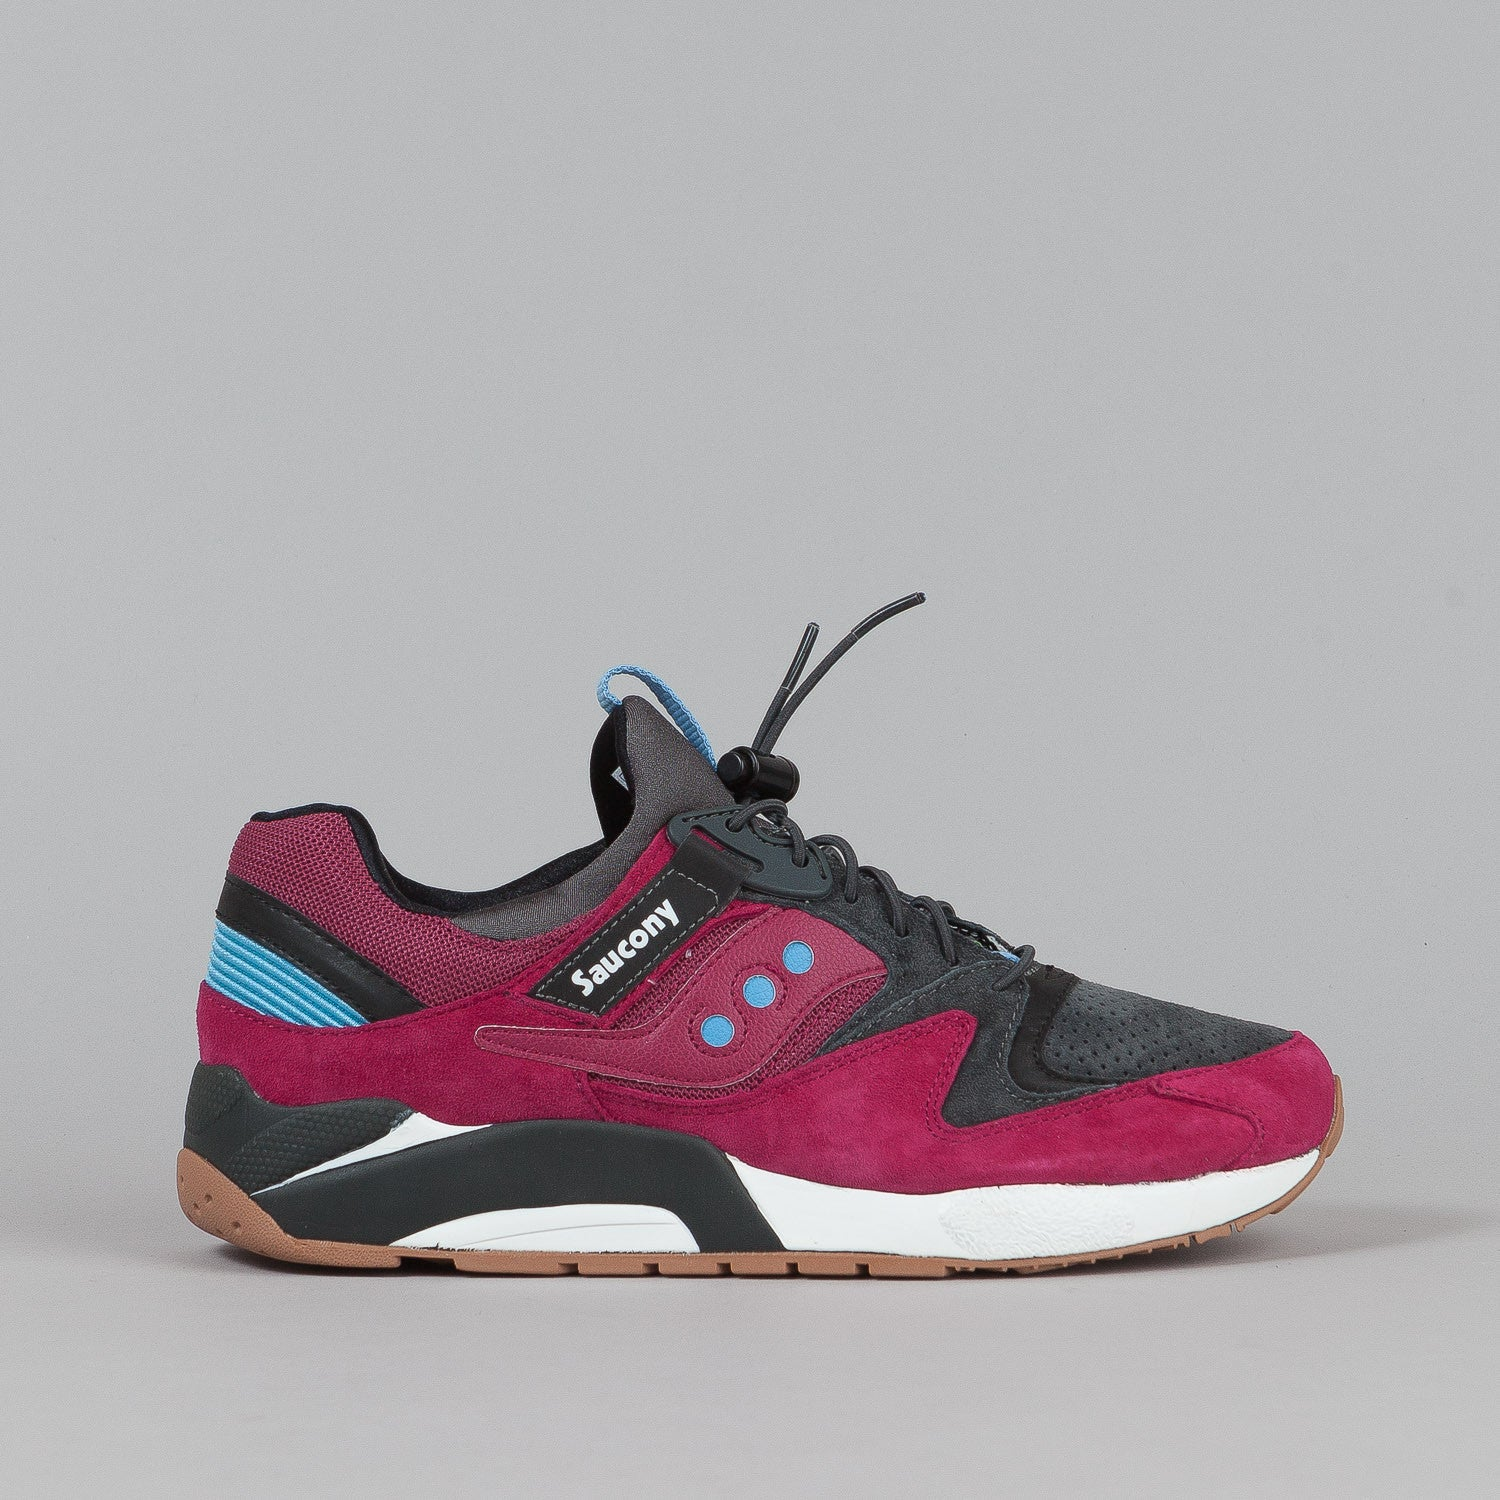 Saucony Grid 9000 Shoes Premium